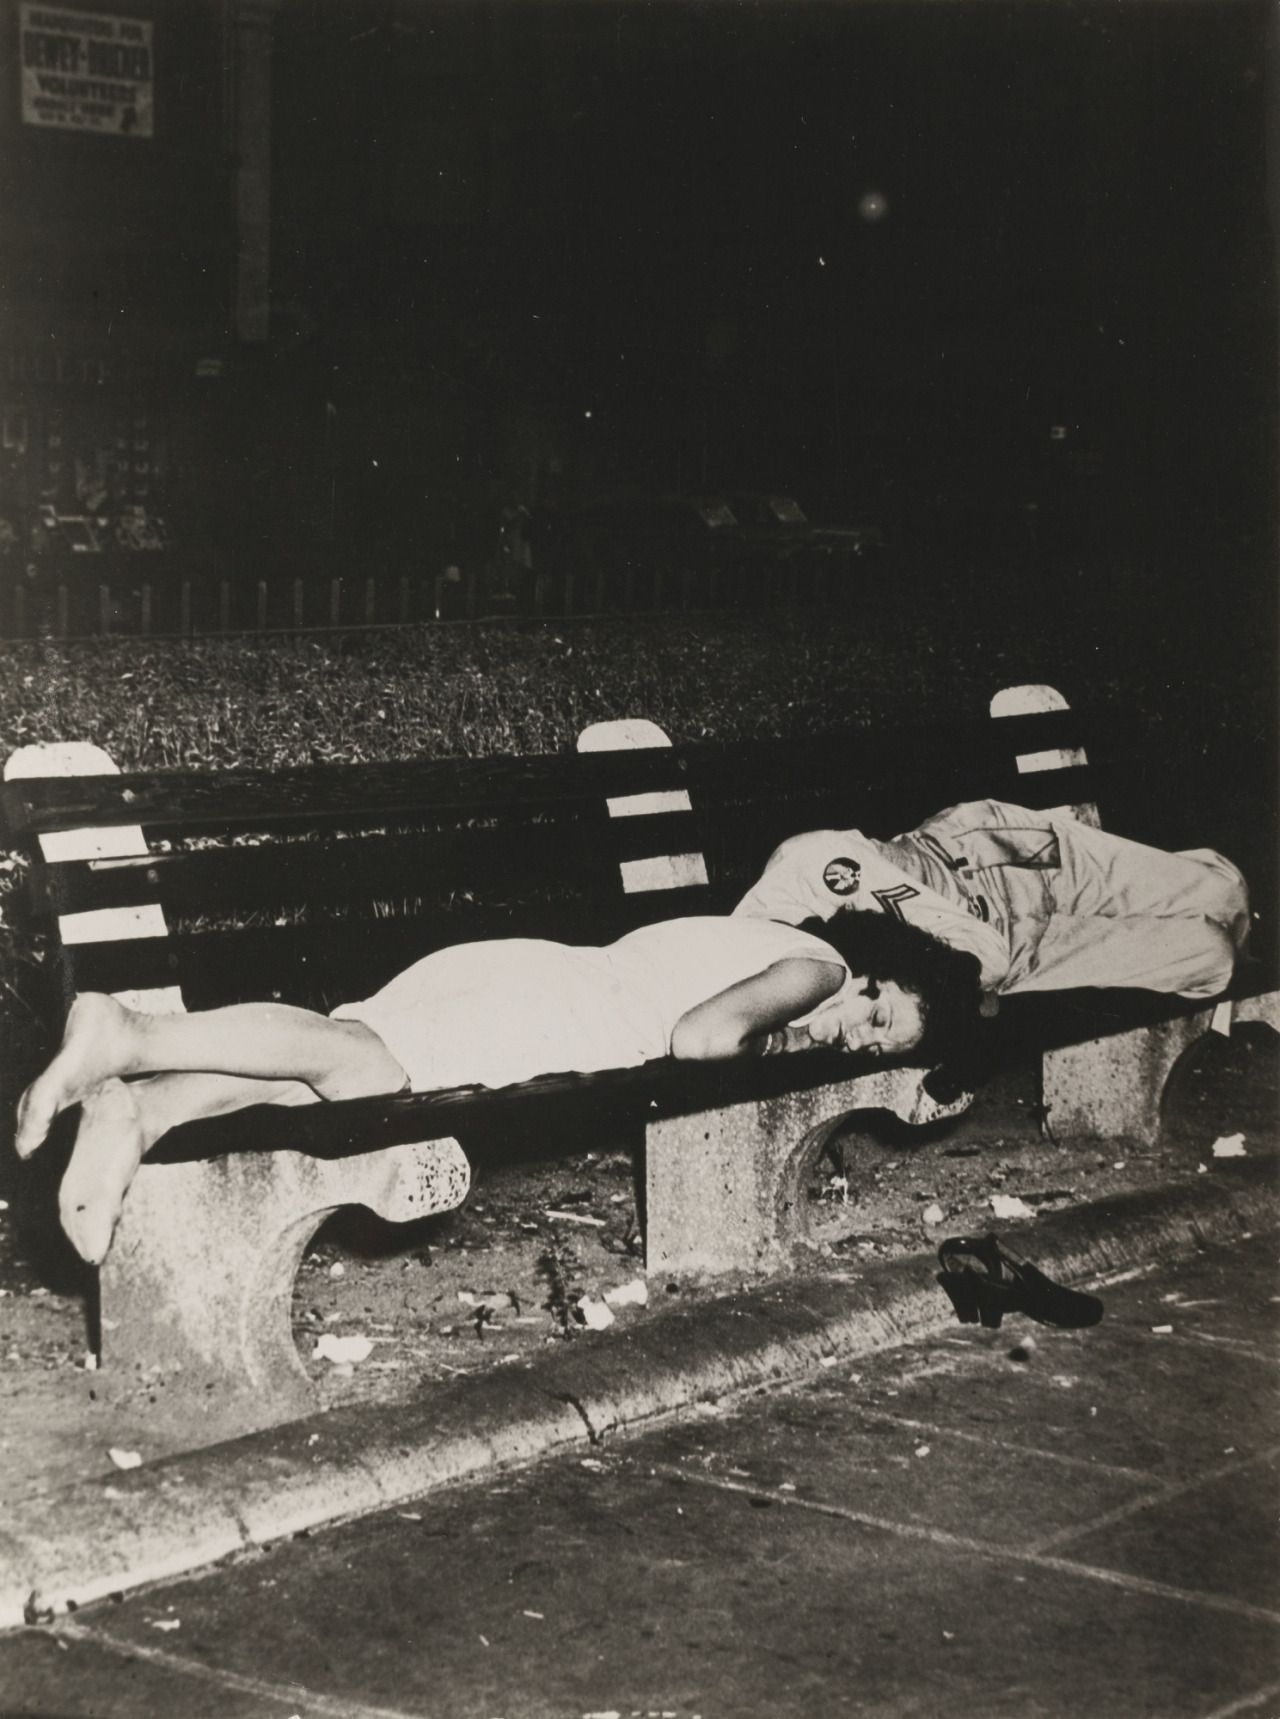 Weegee SELECTED IMAGES OF CRIME, CHILDREN, AND SLEEPERS IN